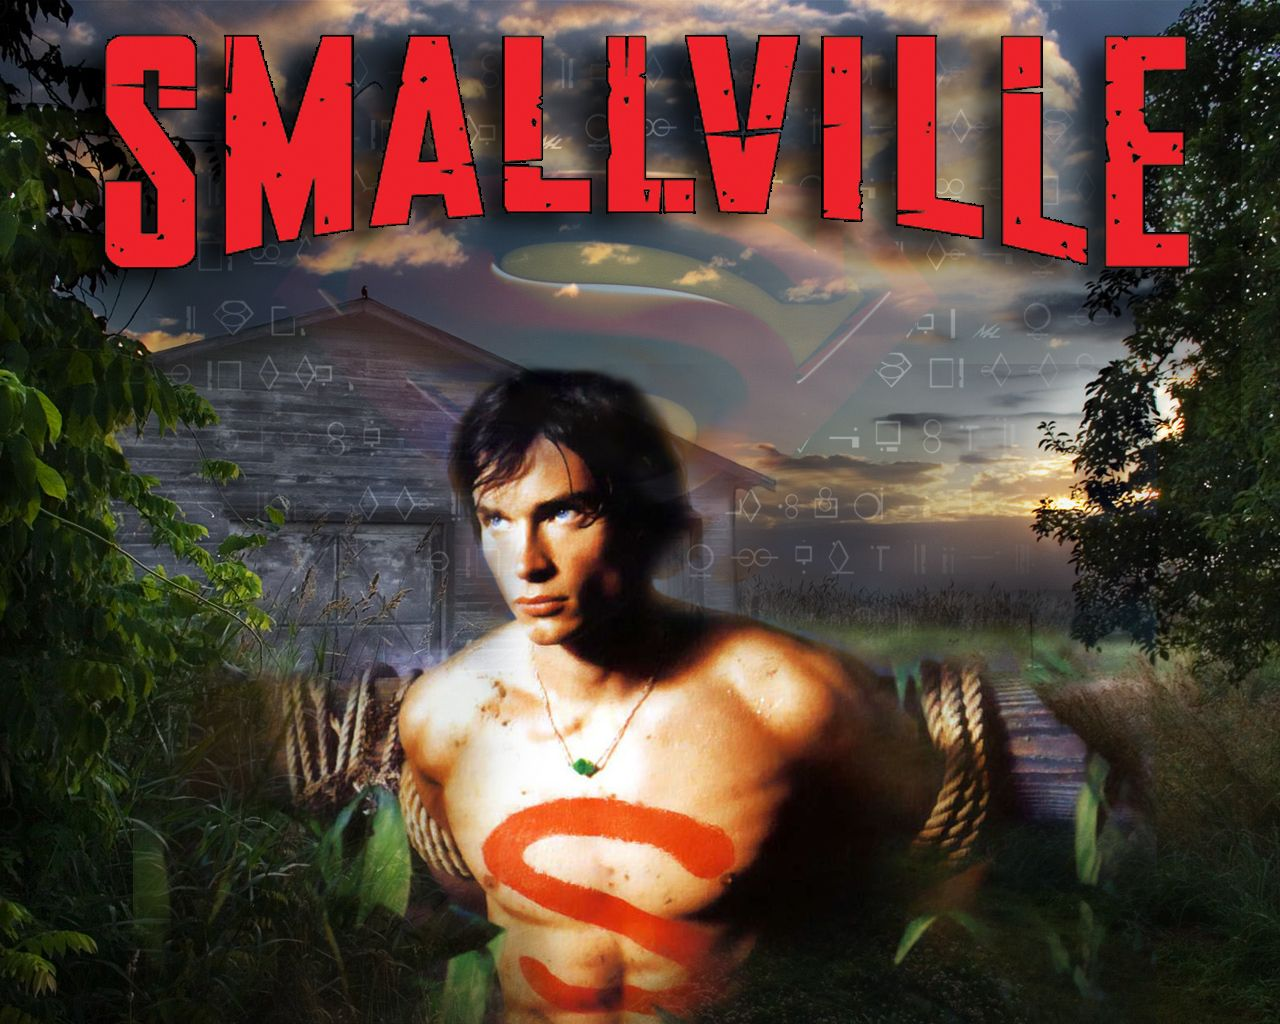 Tom Welling Smallville Logo Wallpaper 1280x1024